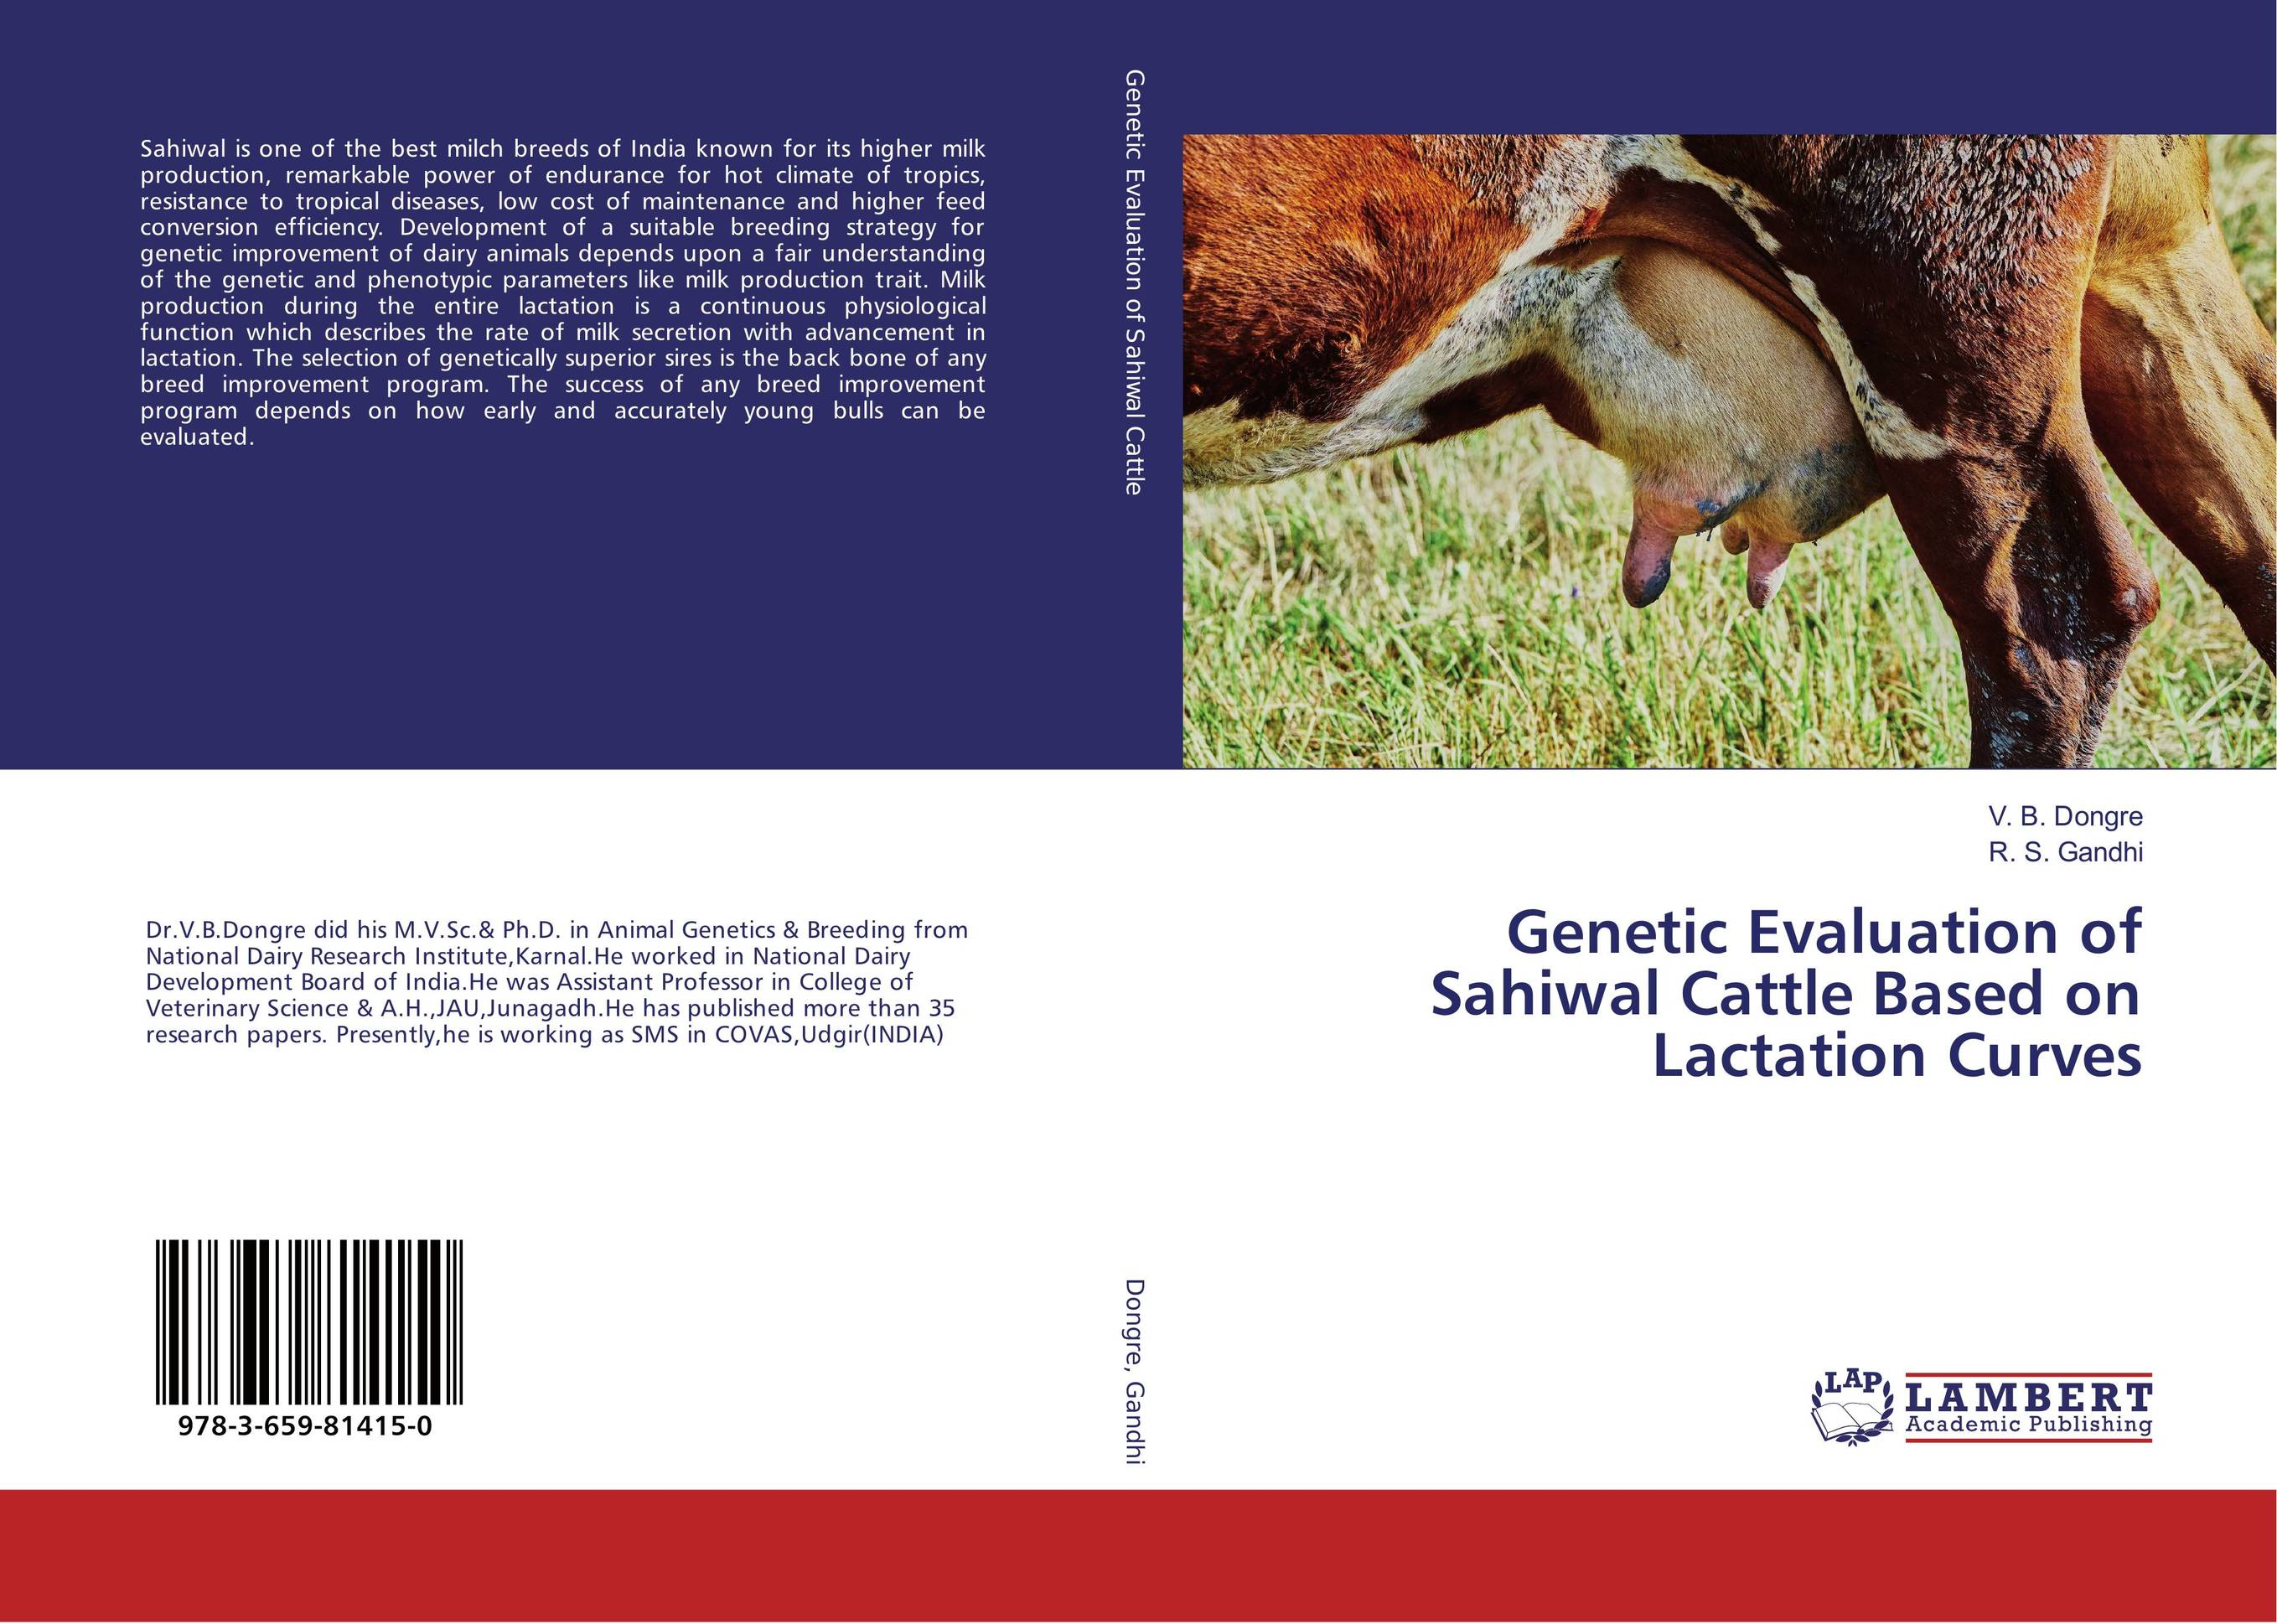 Genetic Evaluation of Sahiwal Cattle Based on Lactation Curves шлифовальная машина makita bo5030